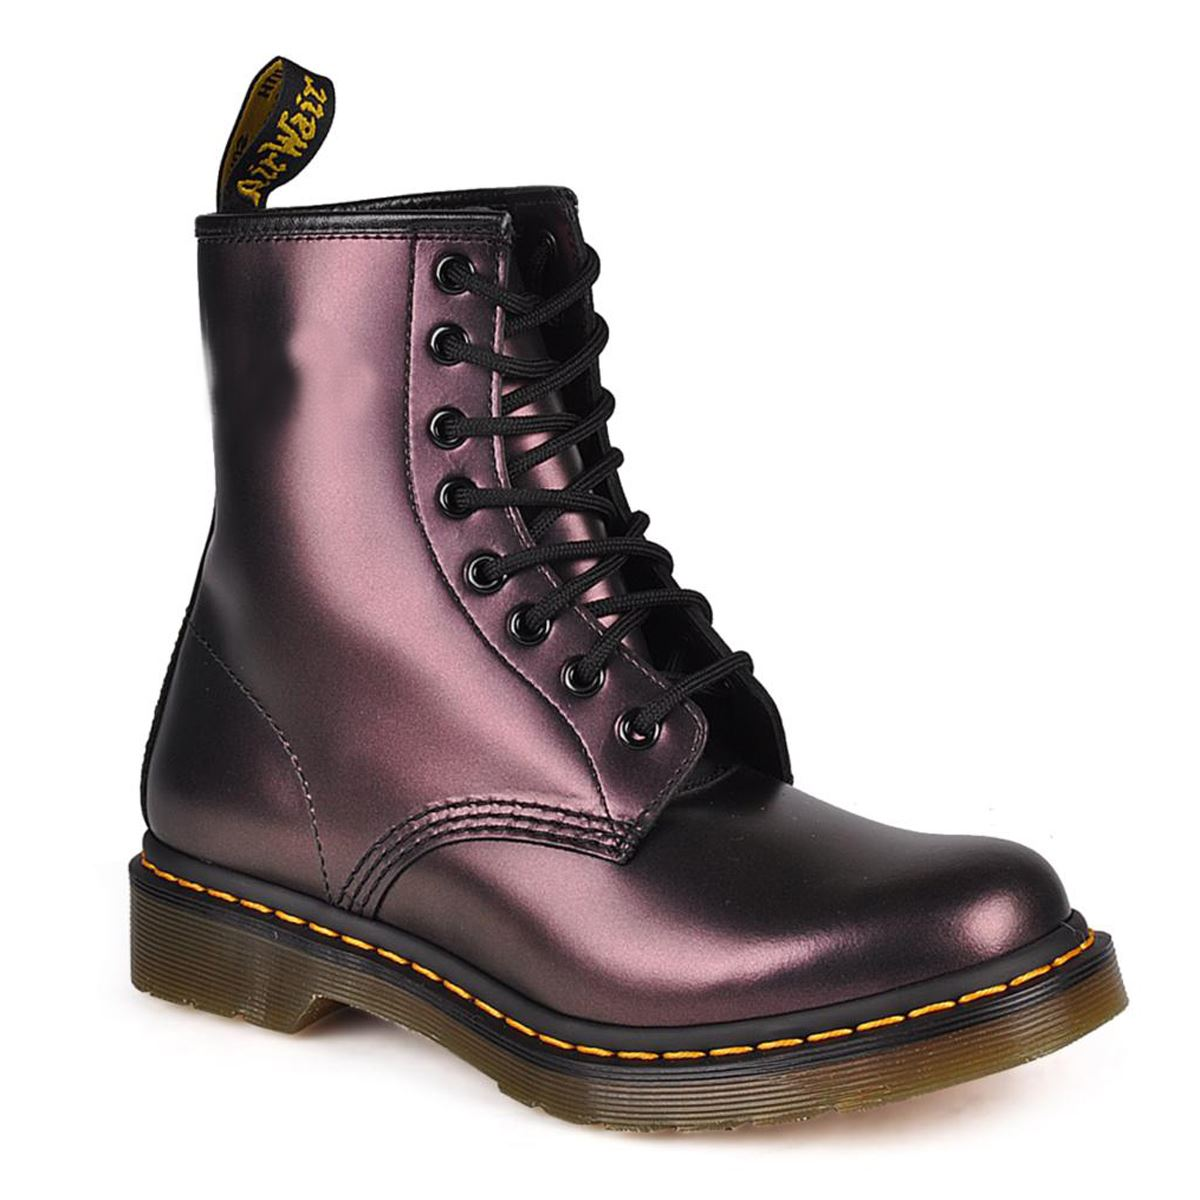 Dr martens 1460 8 eyelet unisex ankle boots mens womens for Amazon dr martens